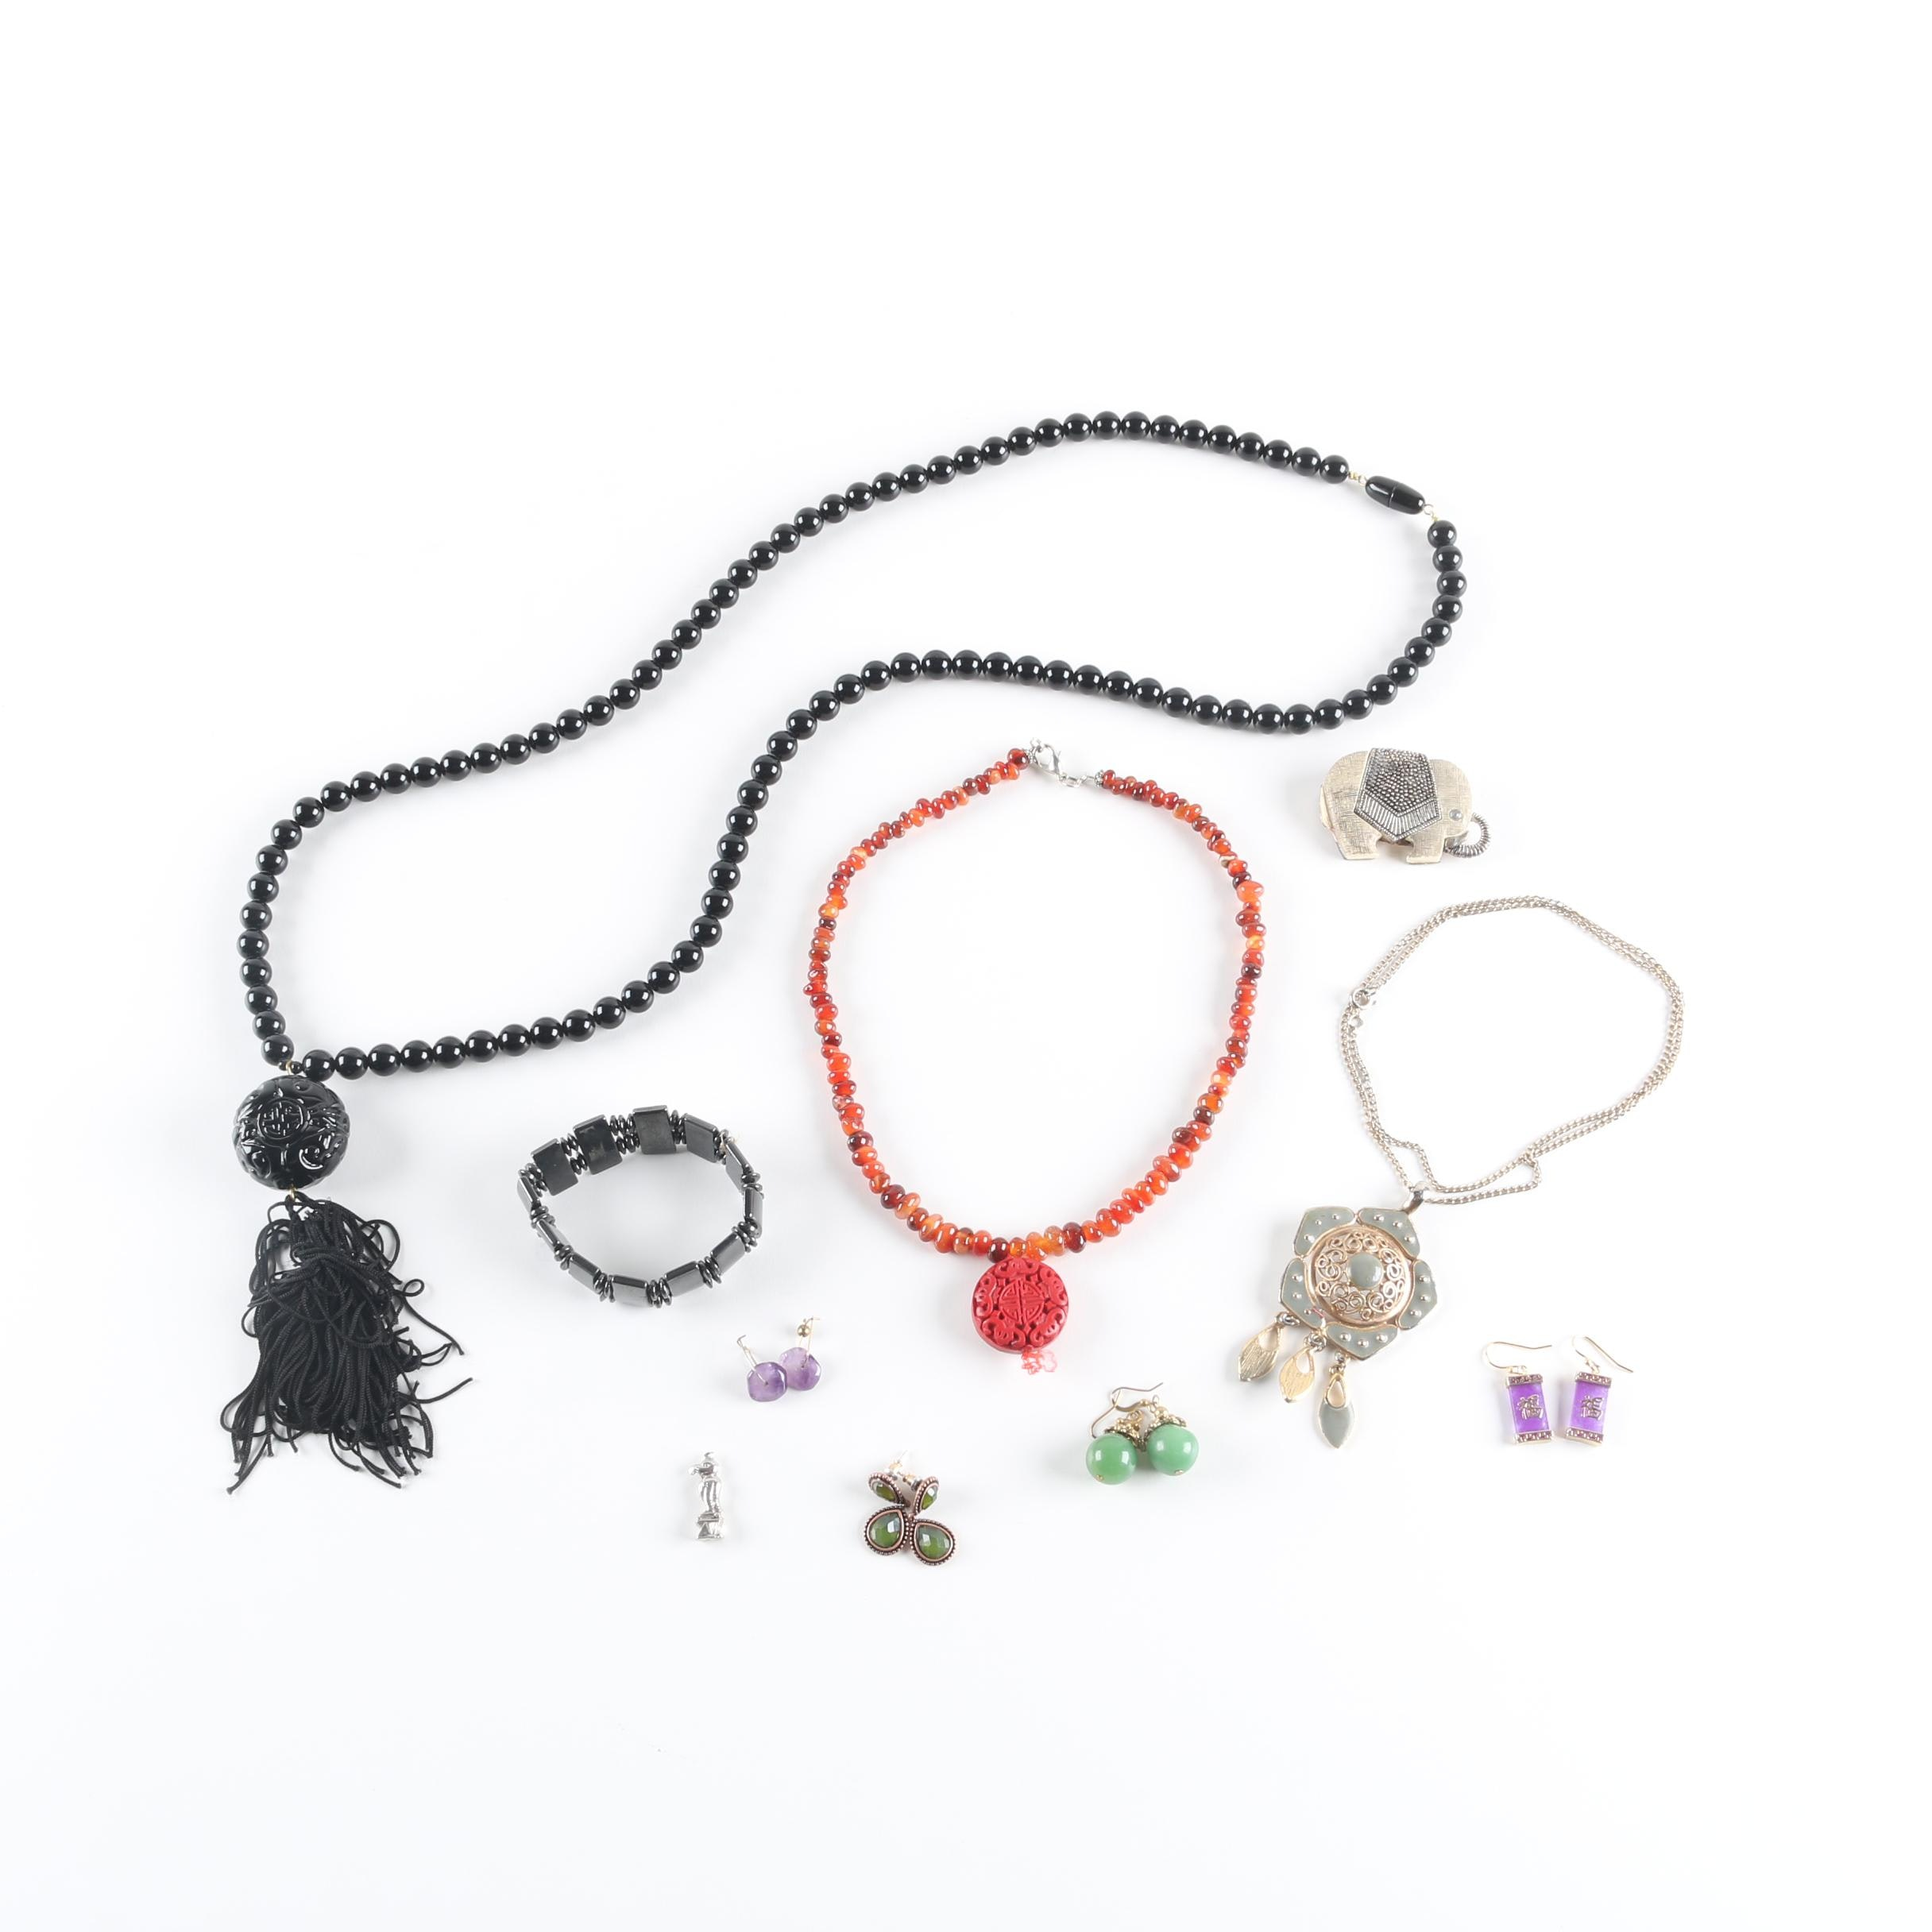 Selection of Asian-Inspired Jewelry